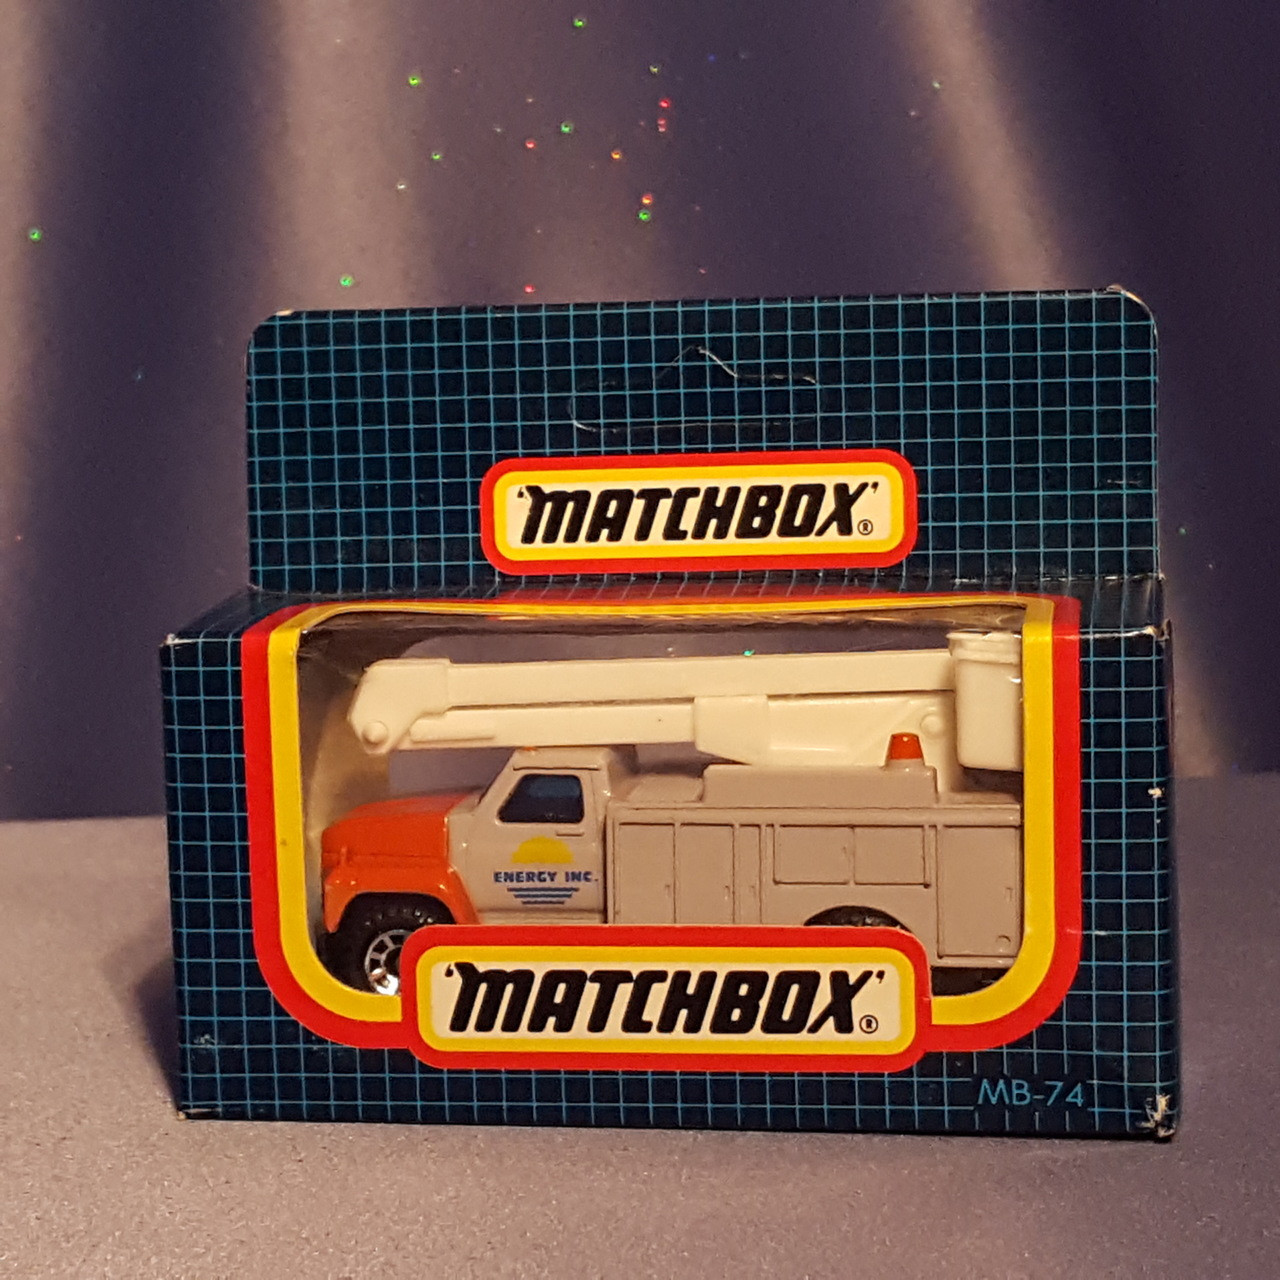 Ford Utility Vehicle - MB-74 by Matchbox.